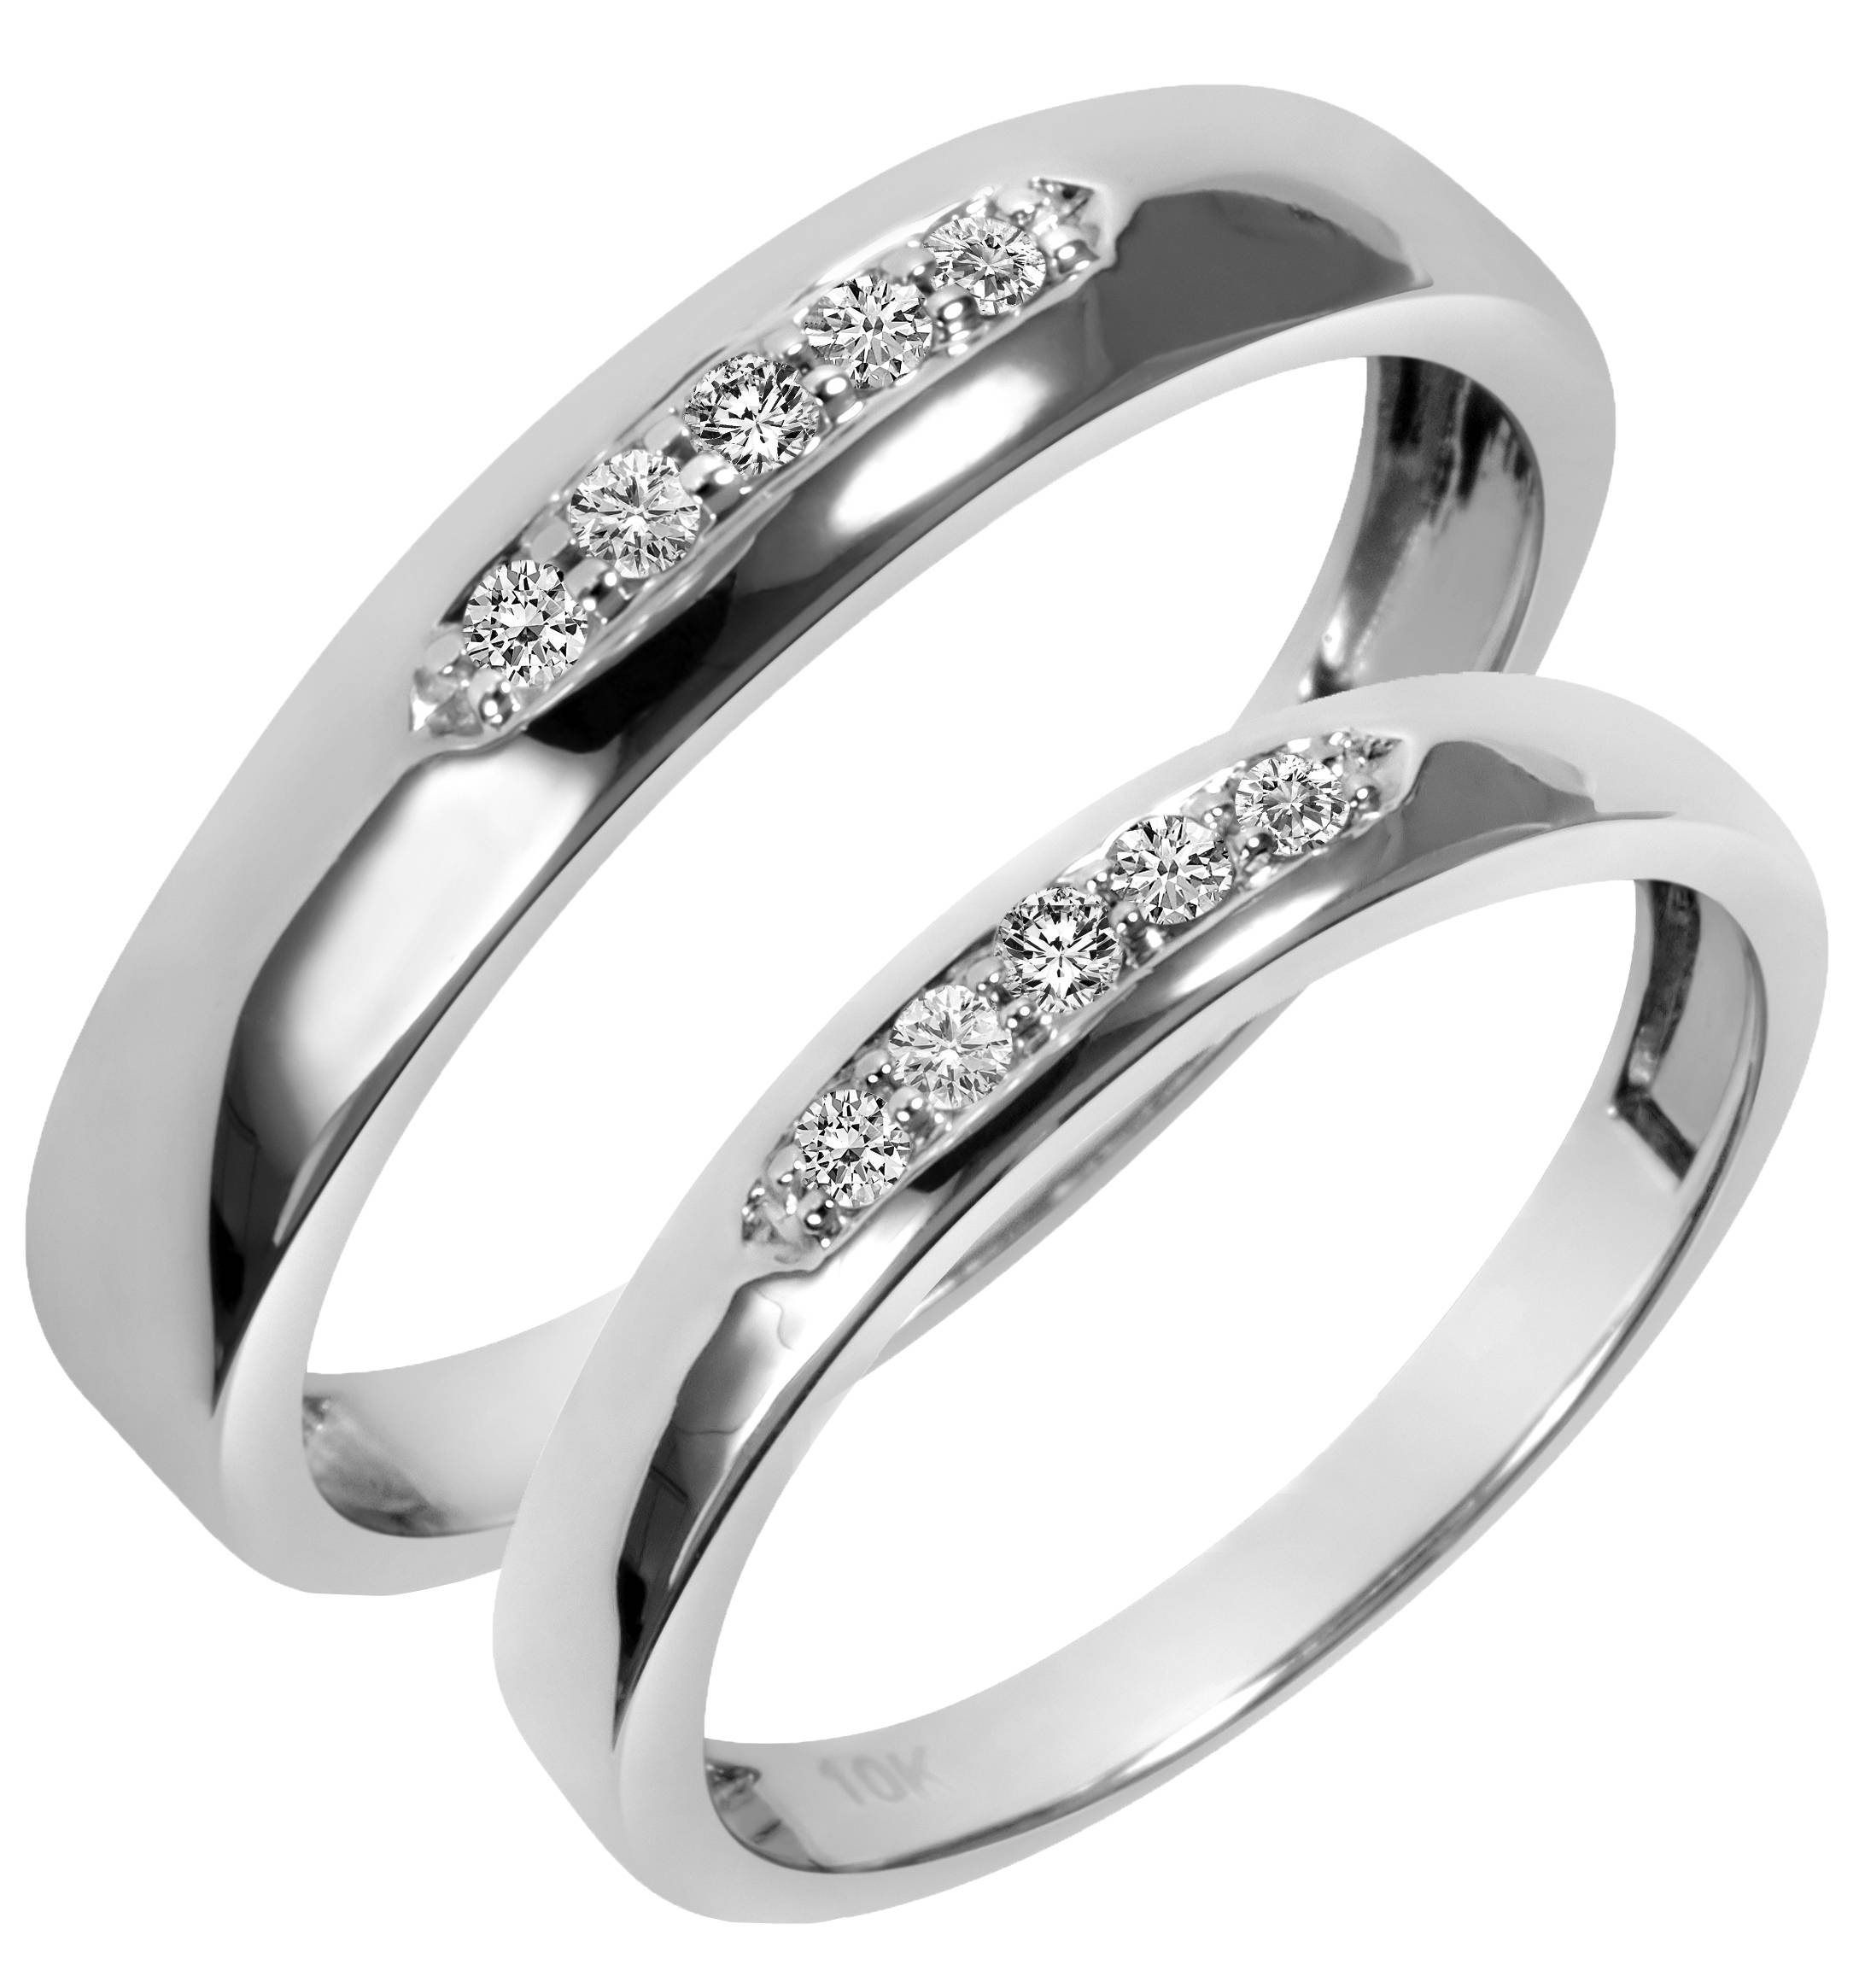 1/5 Carat T.w. Diamond His And Hers Wedding Band Set 14K White Gold For White Gold And Gold Wedding Bands (Gallery 1 of 15)